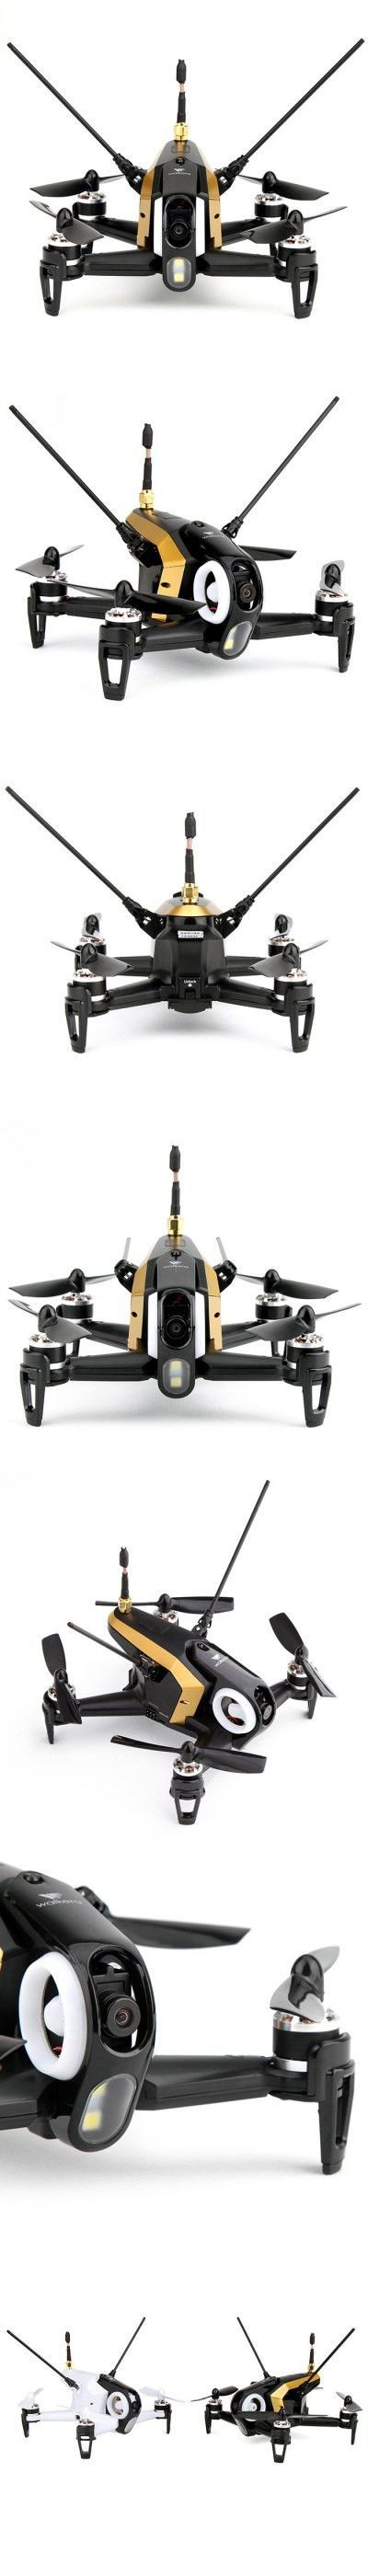 RC Quadcopters | Walkera Rodeo 150 Racing Drone BNF $196.00 - Looking for a 'Quadcopter'? Get your first quadcopter today. TOP Rated Quadcopters has Beginner, Racing, Aerial Photography, Auto Follow Quadcopters and FPV Goggles, plus video reviews and more. => http://topratedquadcopters.com